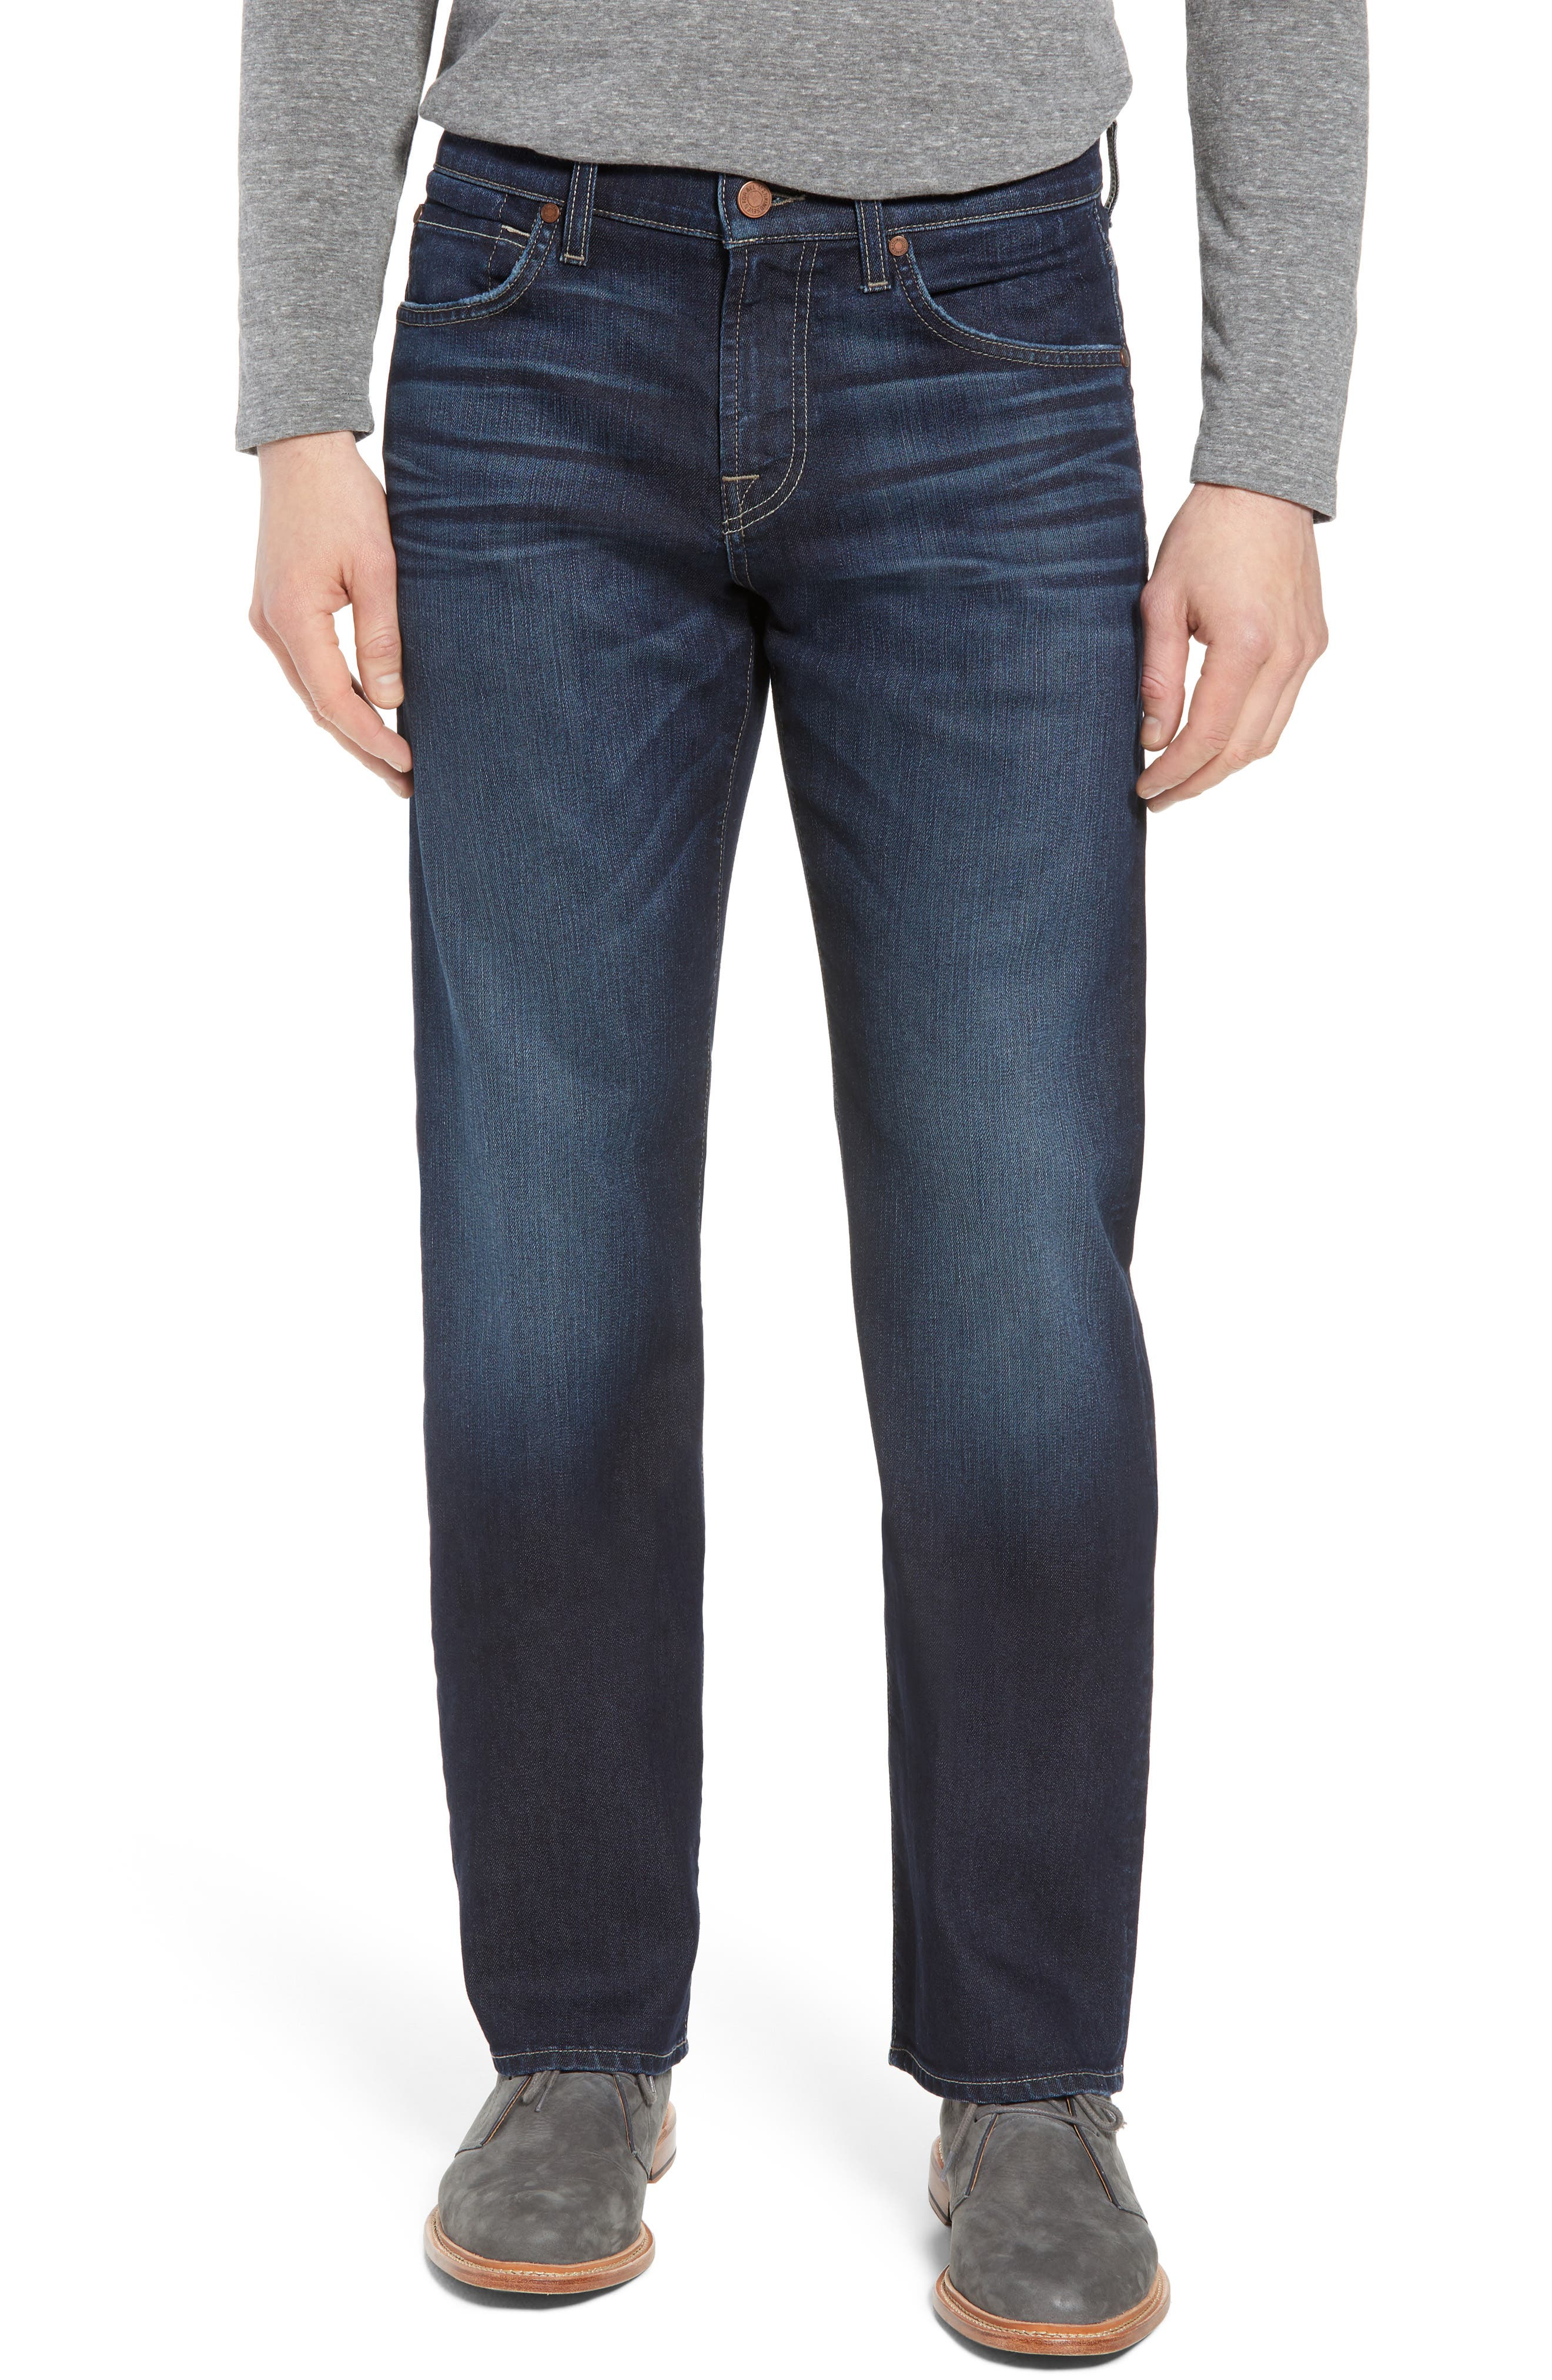 Airweft Austyn Relaxed Straight Leg Jeans,                             Main thumbnail 1, color,                             406